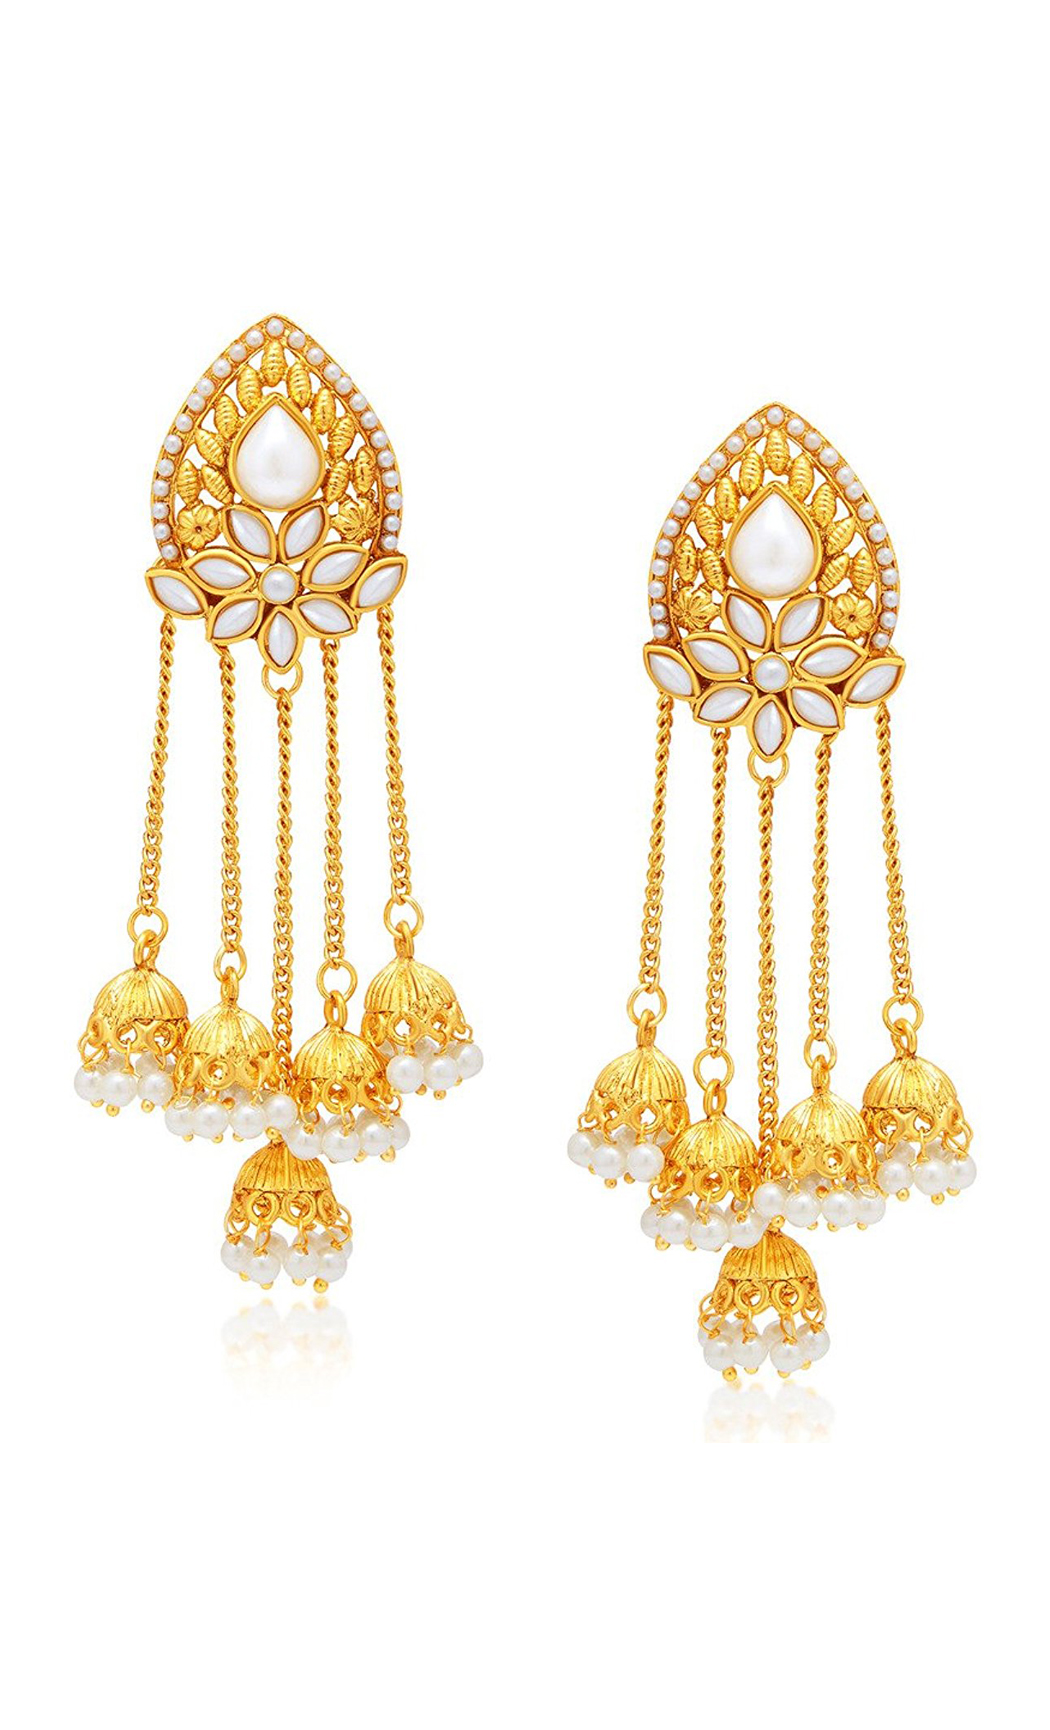 Gold Dangler Earrings with Small Pearl Jhumkas - Shop Now